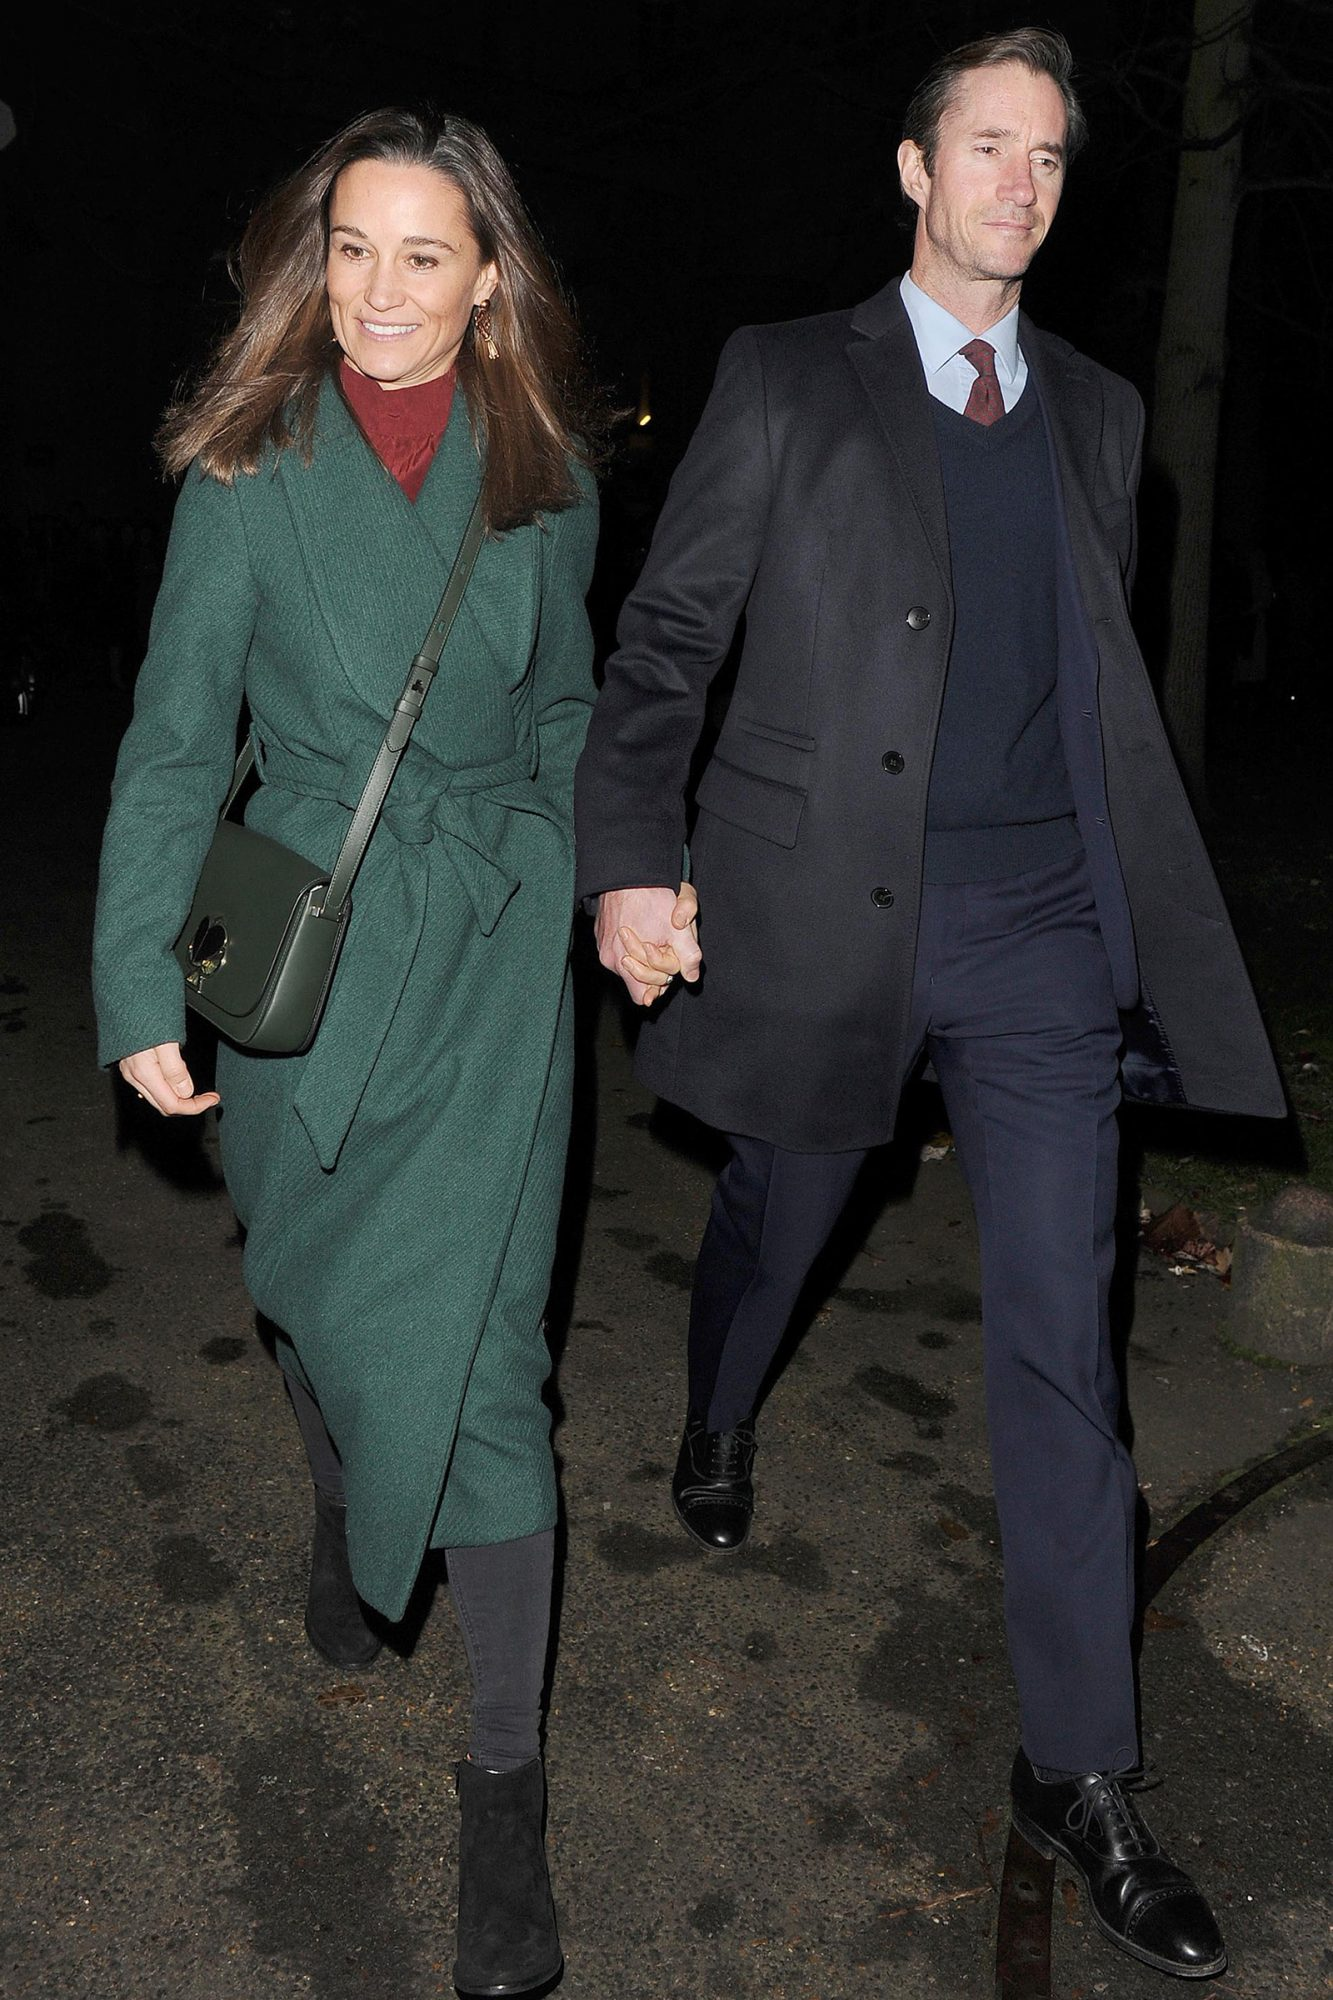 Pippa Middleton and her husband James Matthews leaving St Luke's church in Chelsea, hand in hand, having attended The Henry Van Straubenzee Memorial Fund's Christmas Carol Service